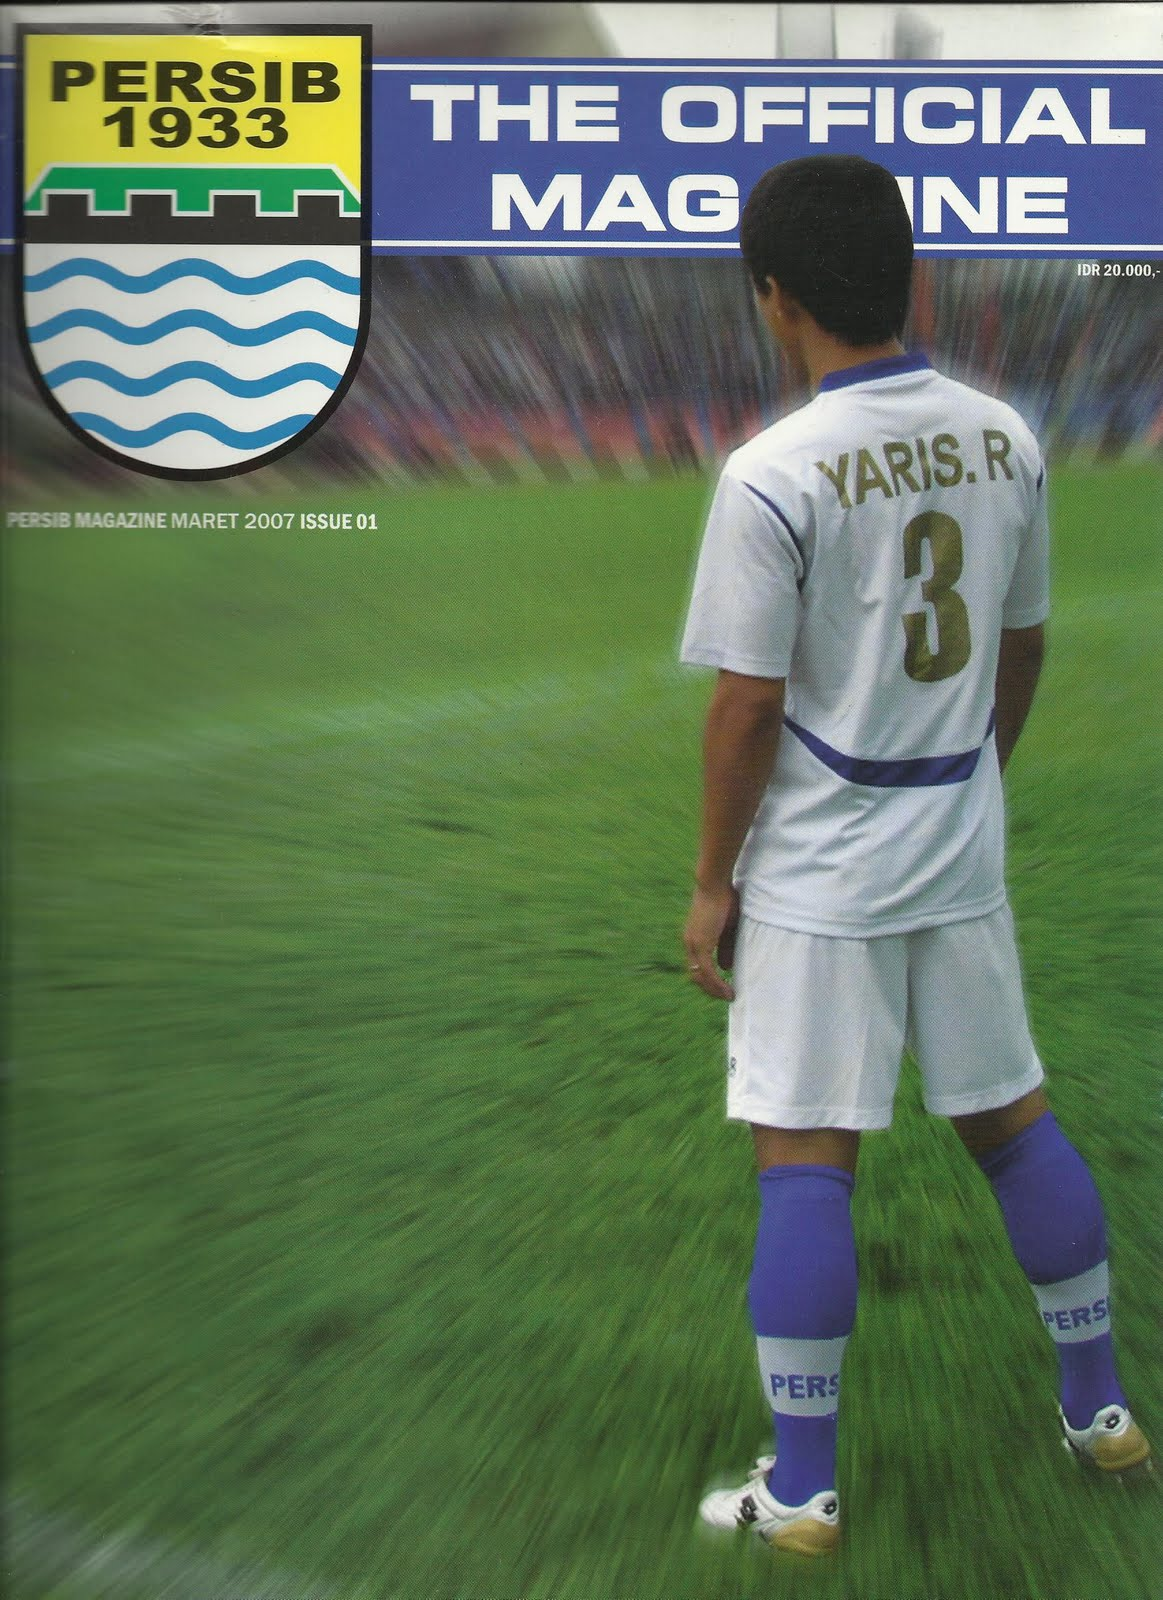 Asian Football Memorabilia: Persib Official Magazine 1